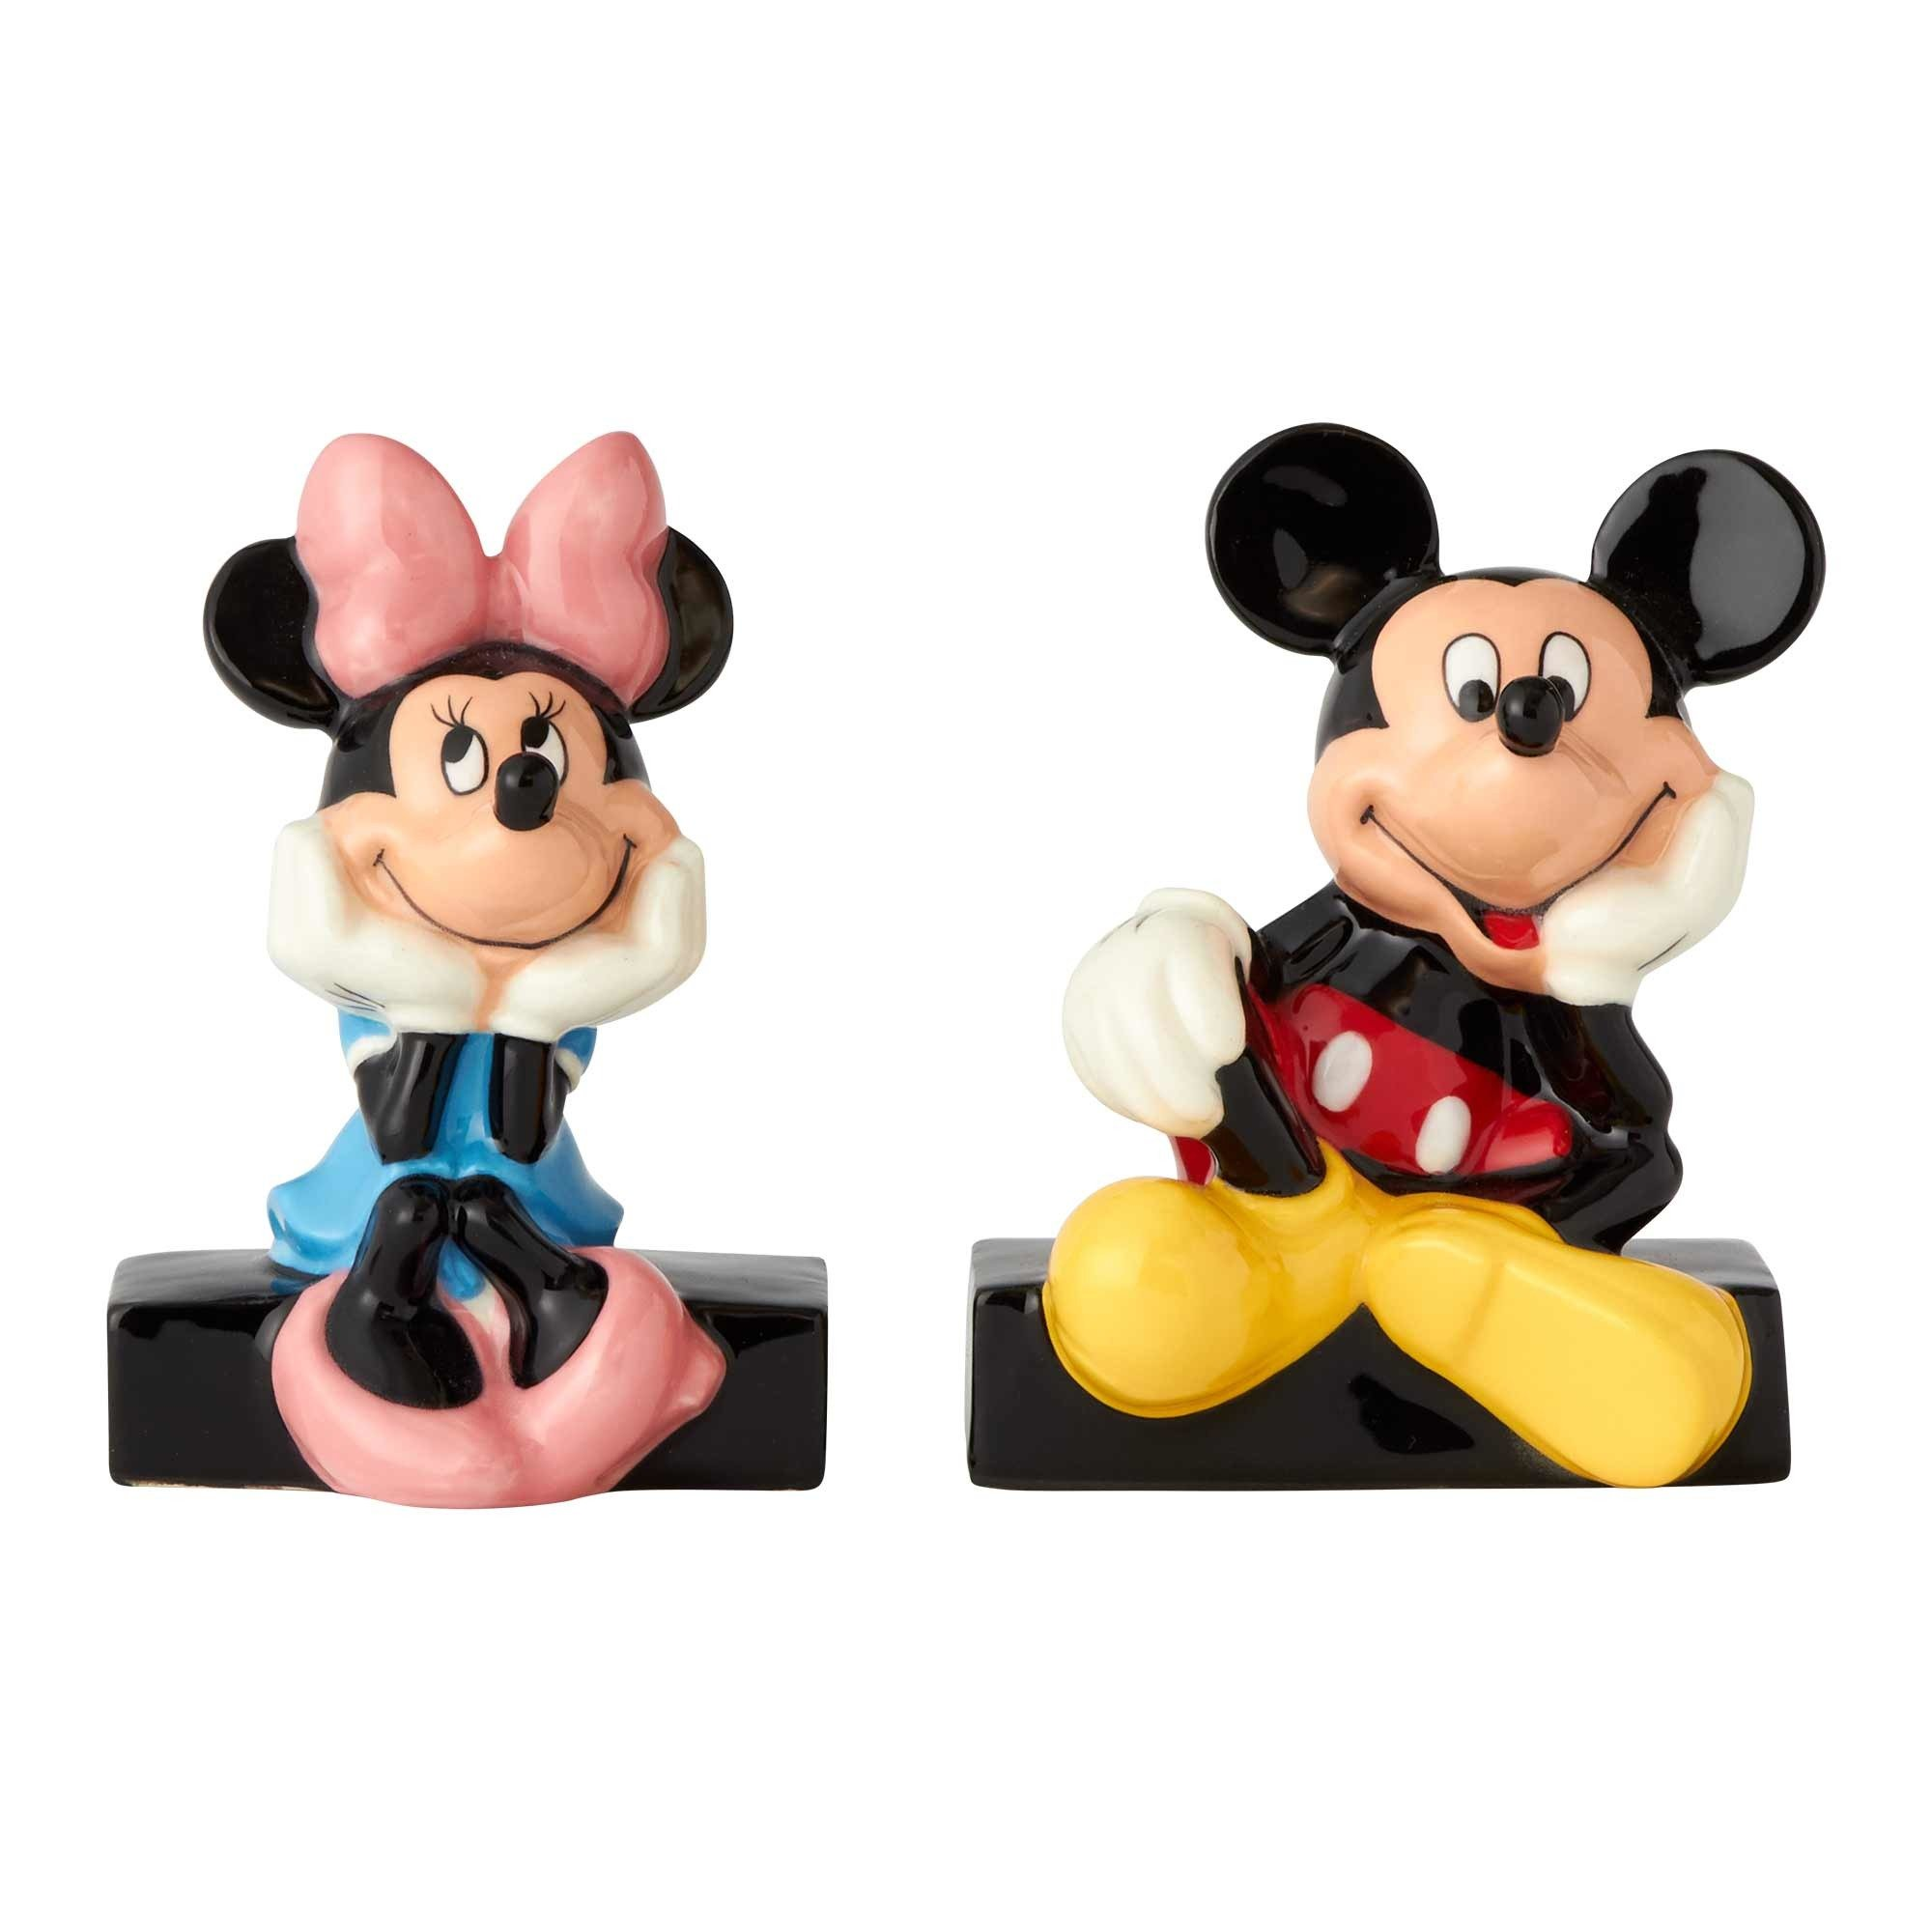 Enesco Disney Ceramics Mickey and Minnie Mouse Salt and Pepper Shakers, 3.5'', Multicolor